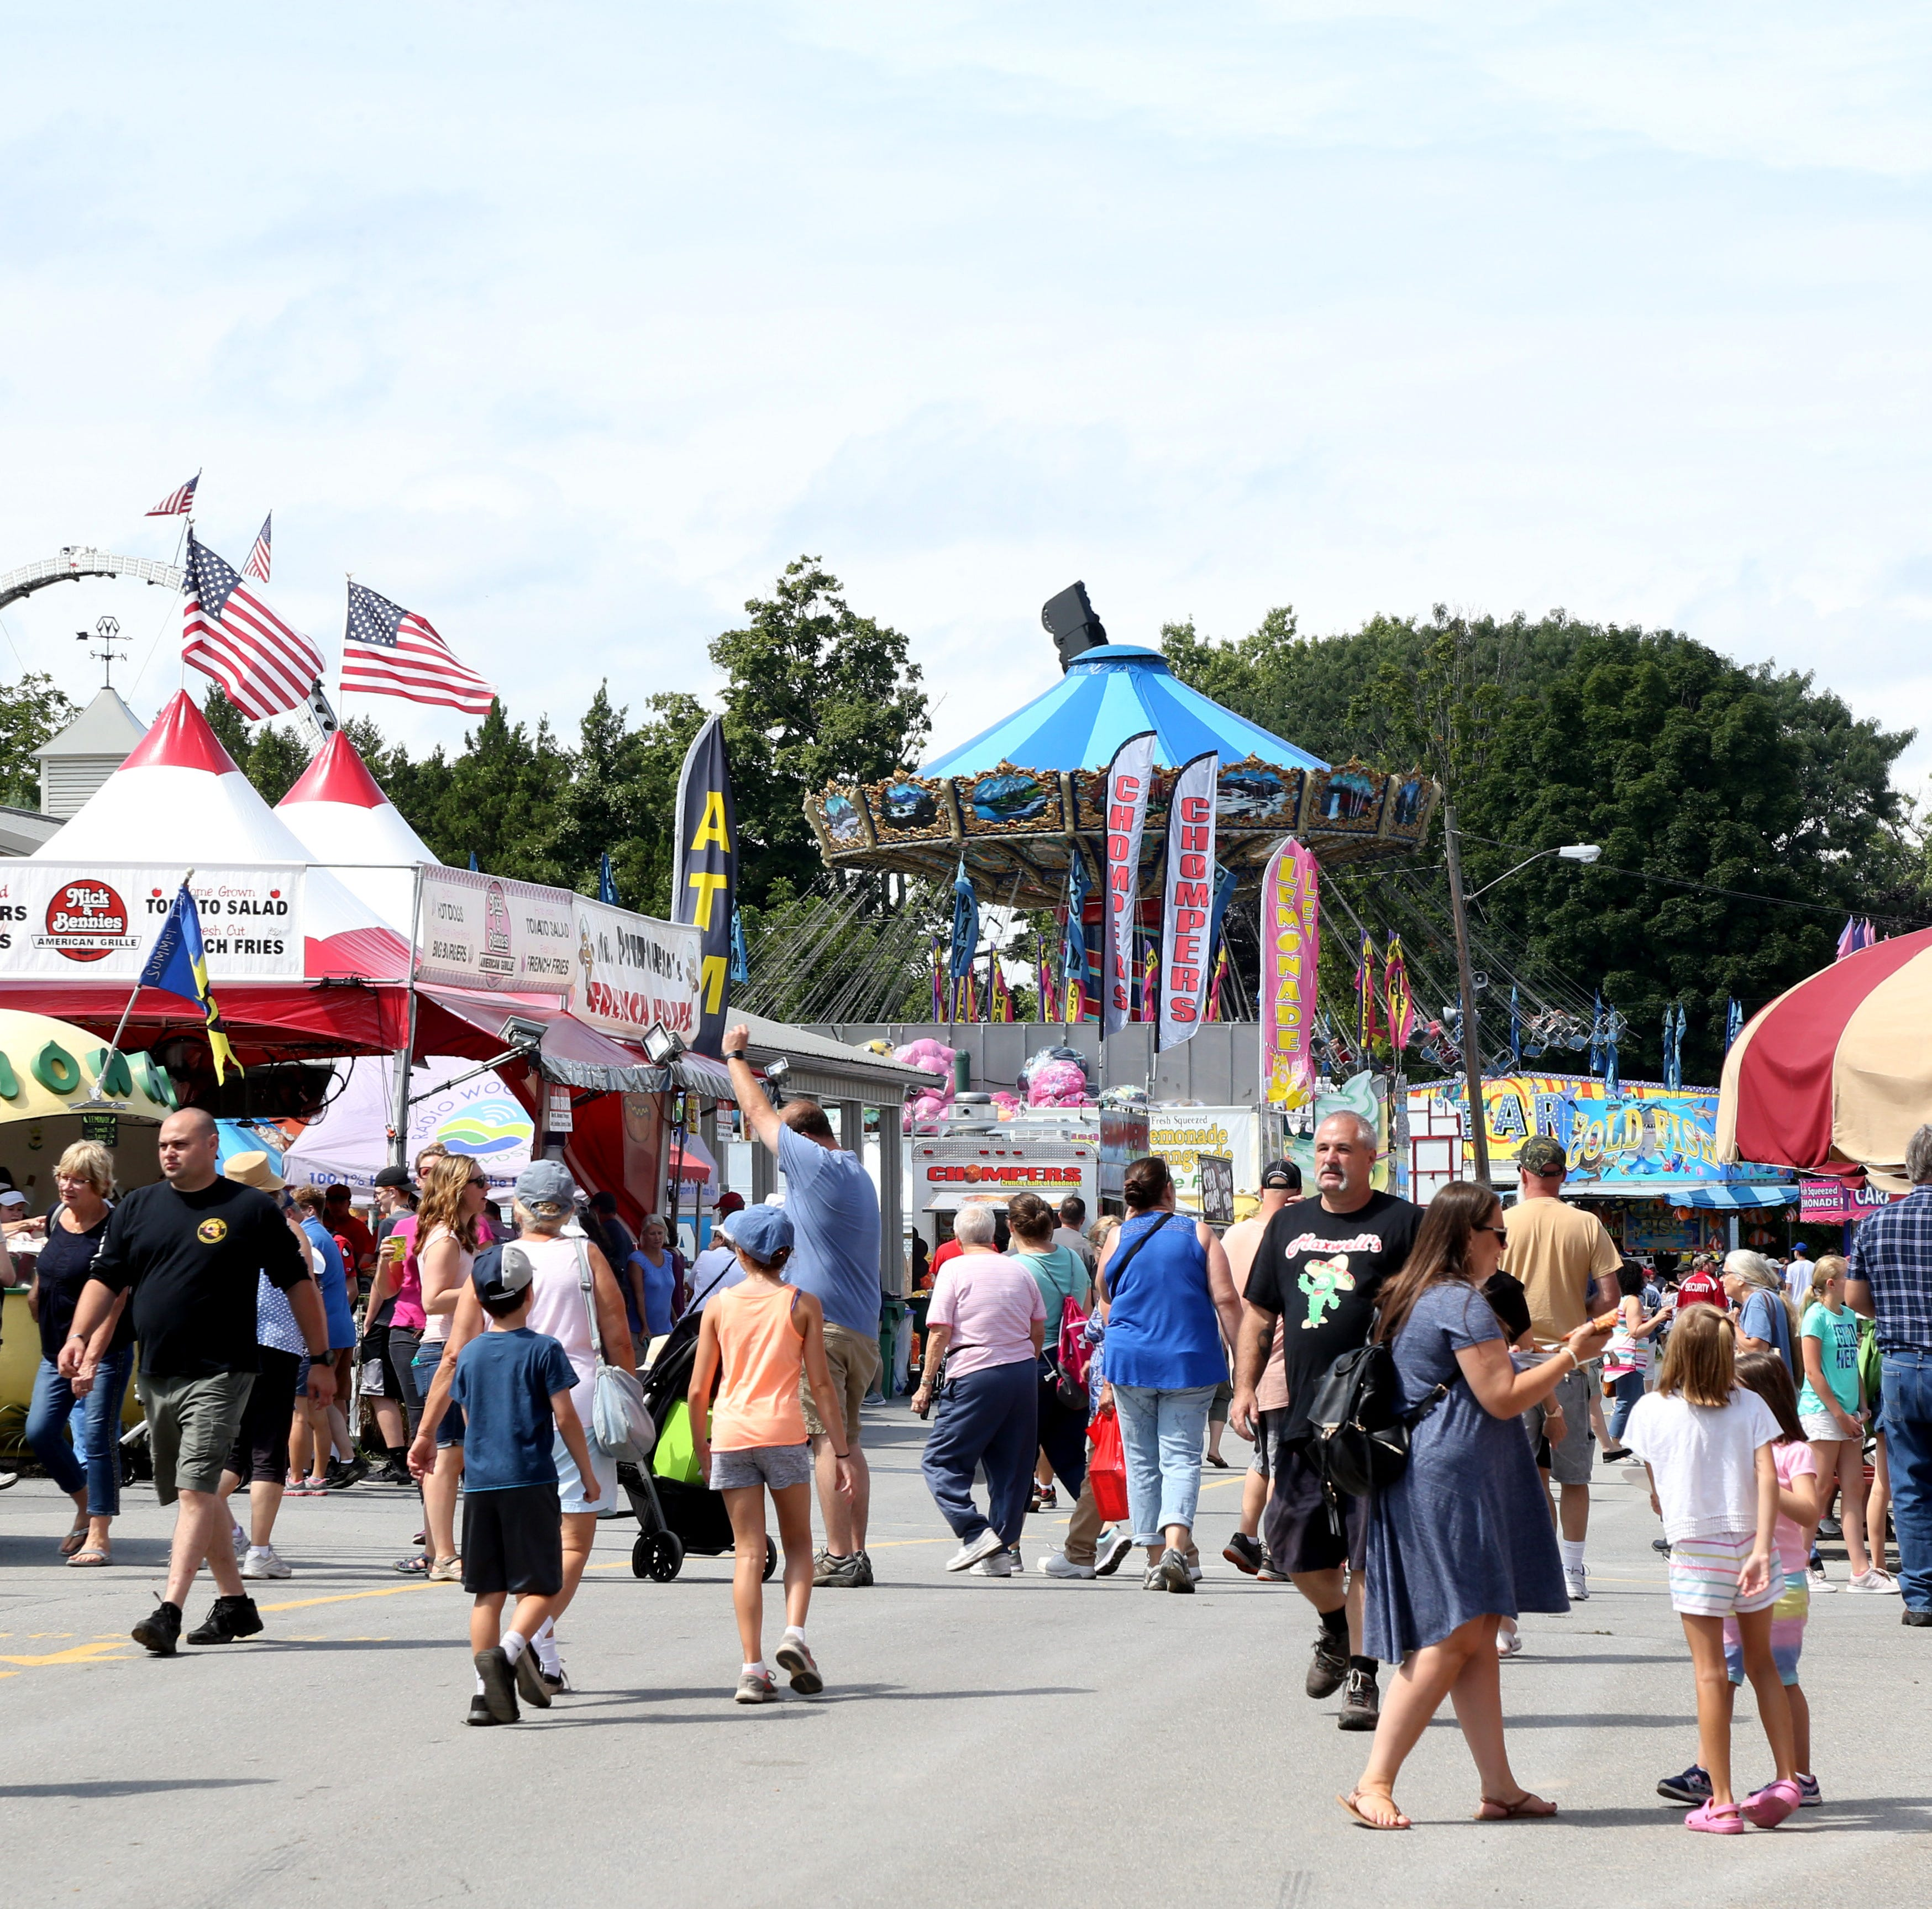 Photos: Opening Day at the 2018 Dutchess County Fair